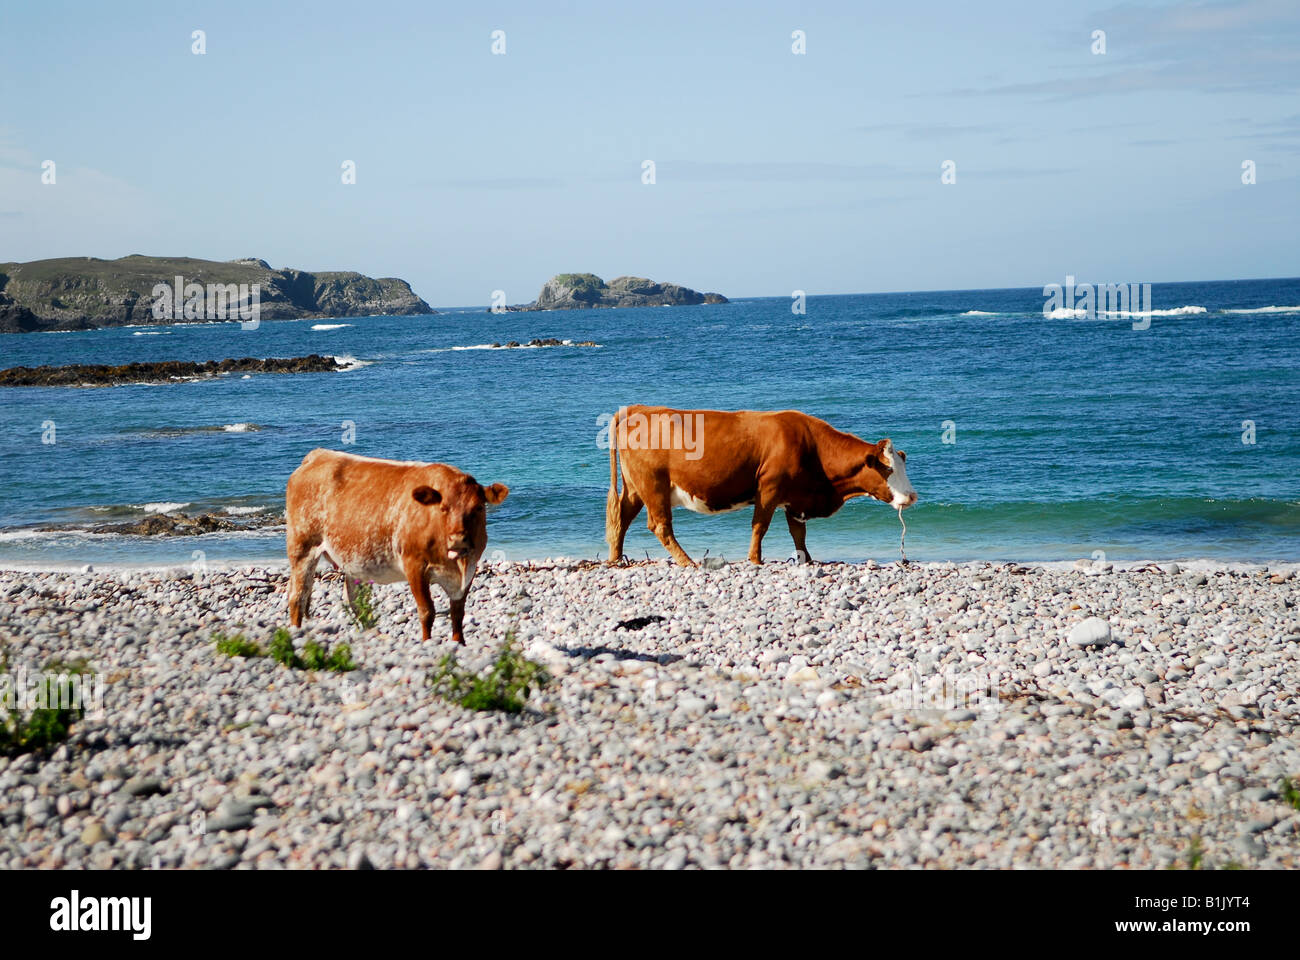 Sur les vaches highland beach Photo Stock